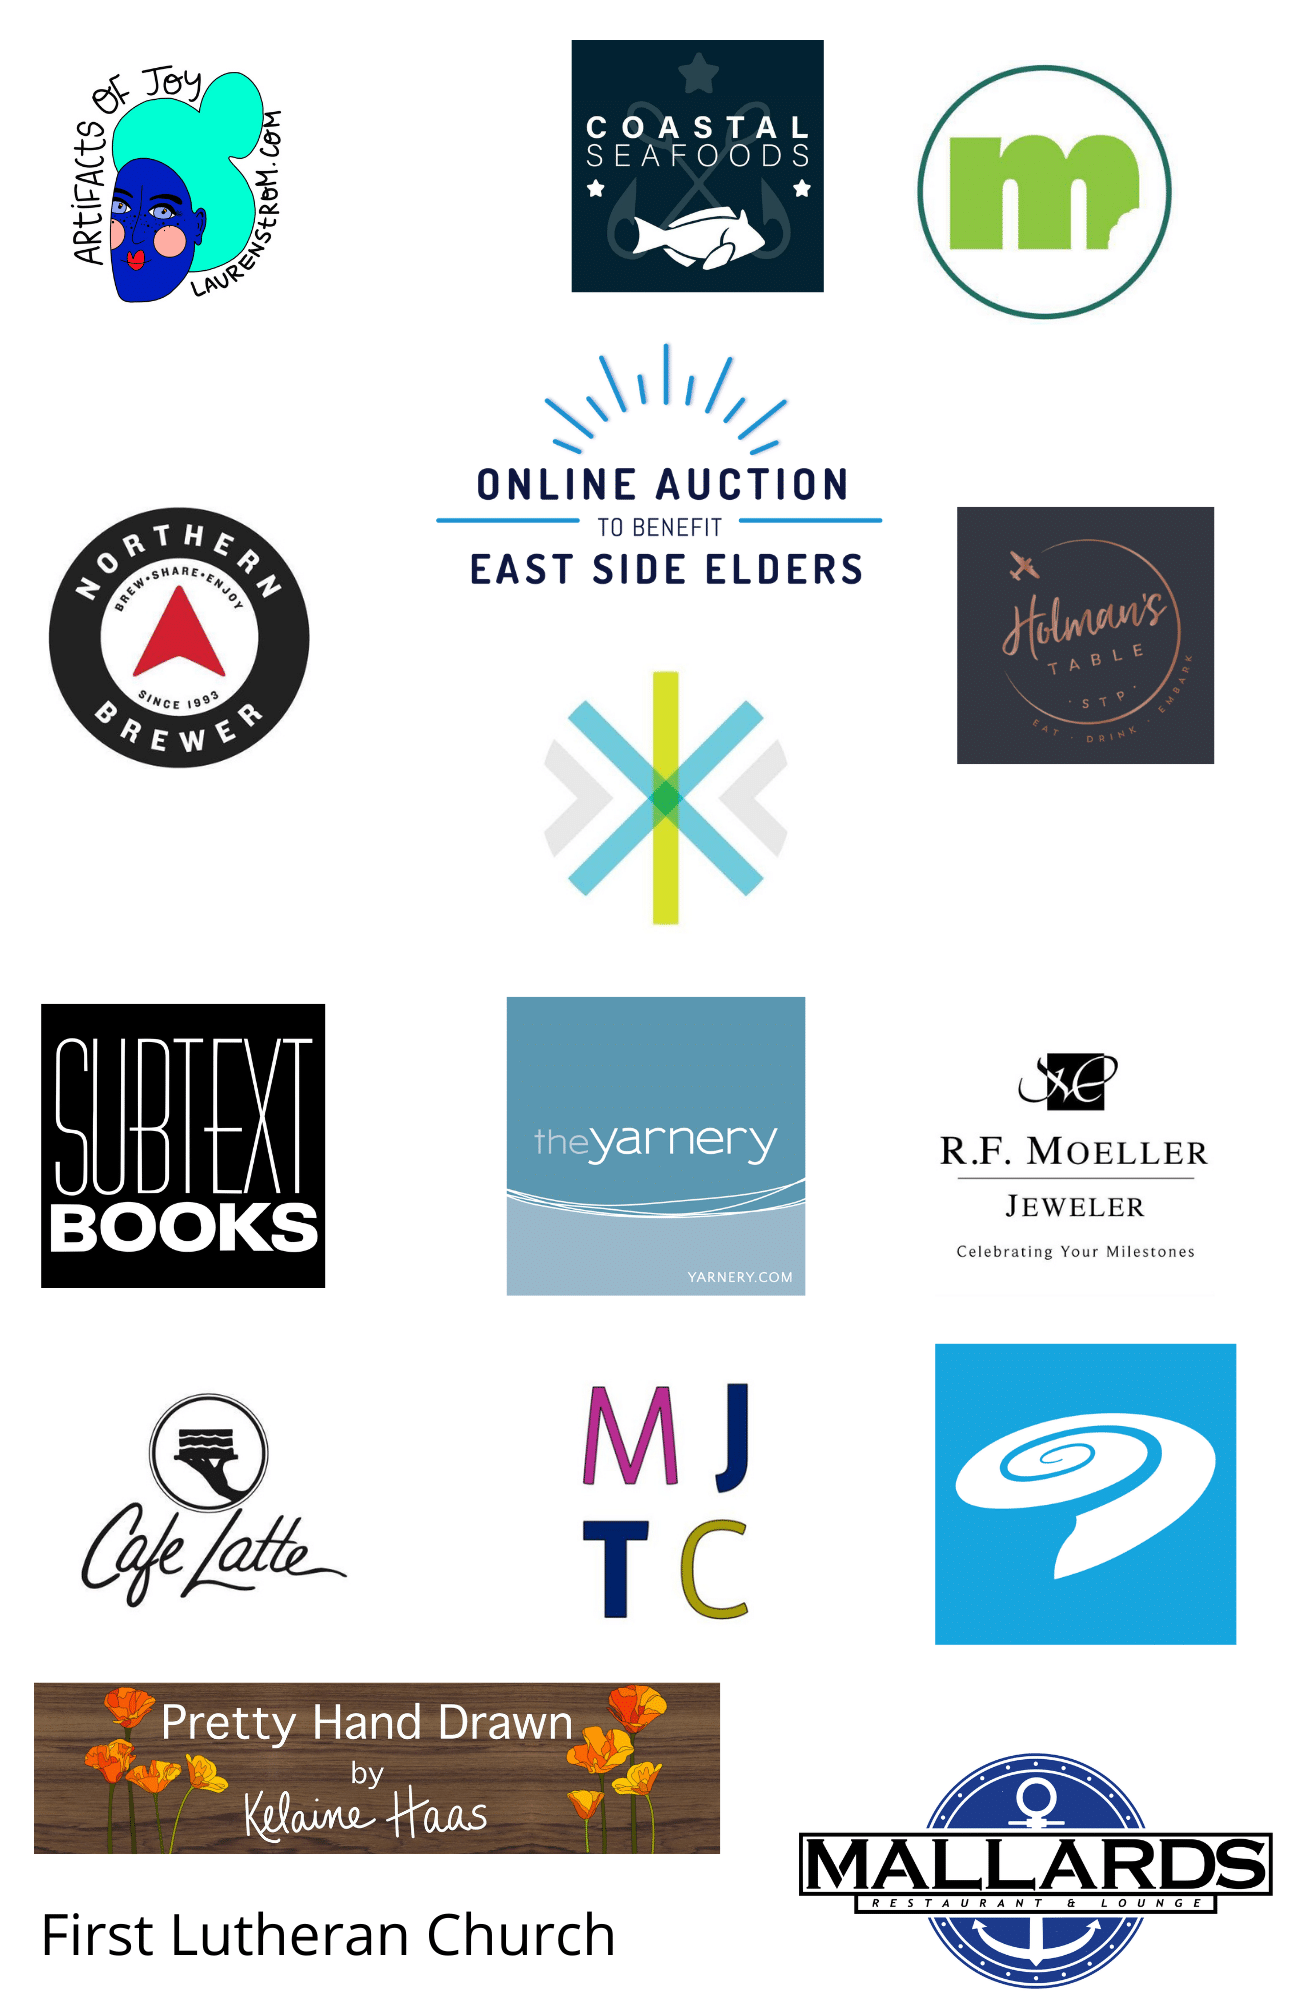 Collection of logos from businesses and organization that donated to the 2020 online auction.